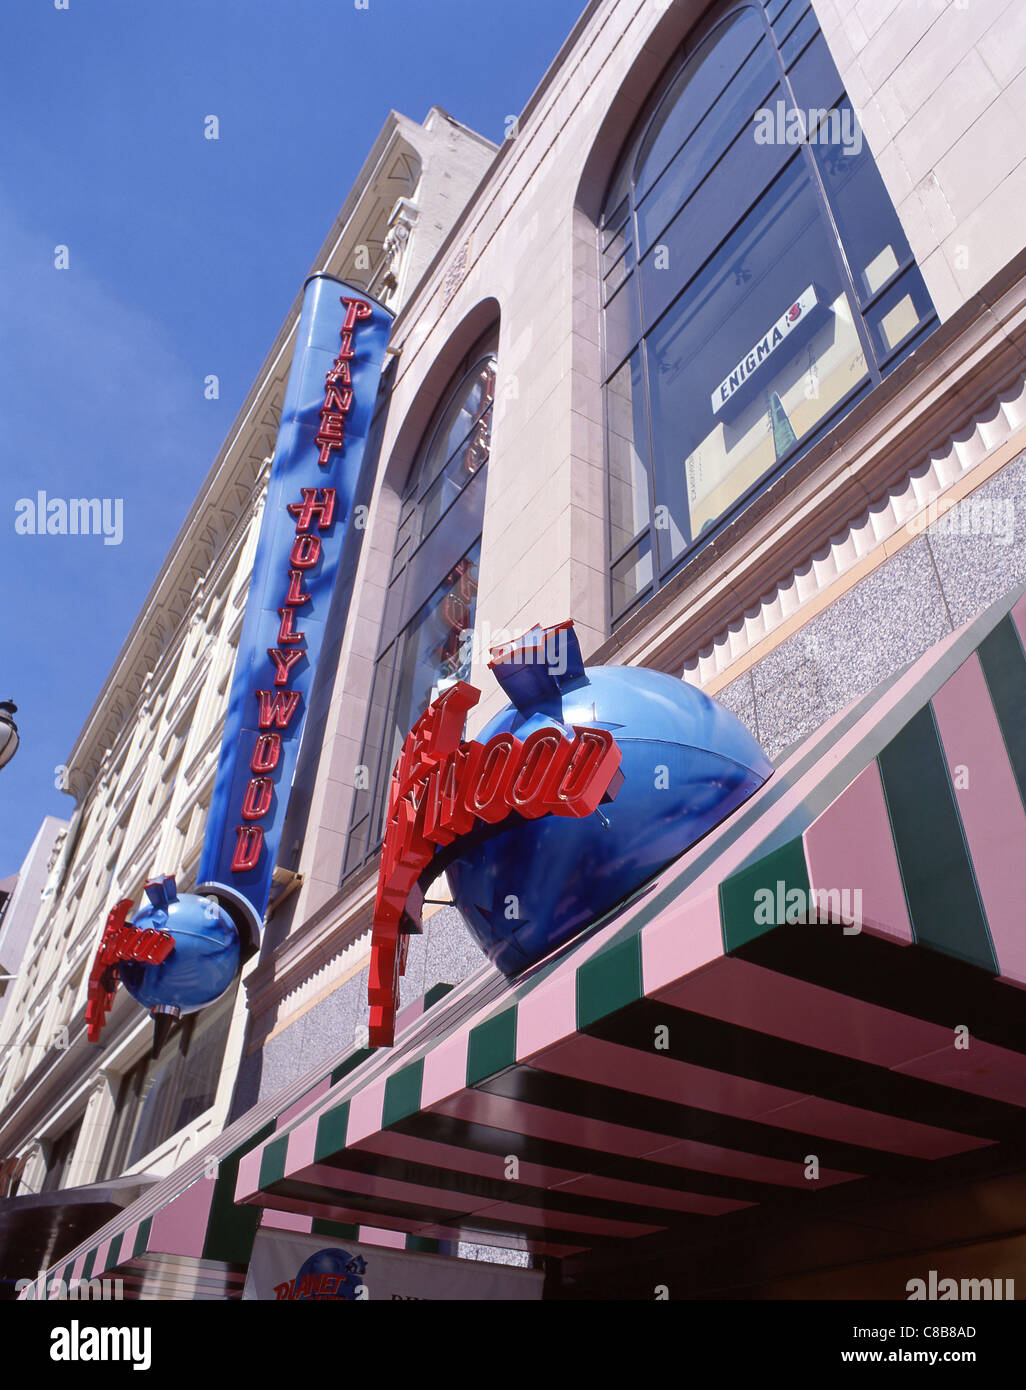 Planet Hollywood, Union Square, San Francisco, California, United ...